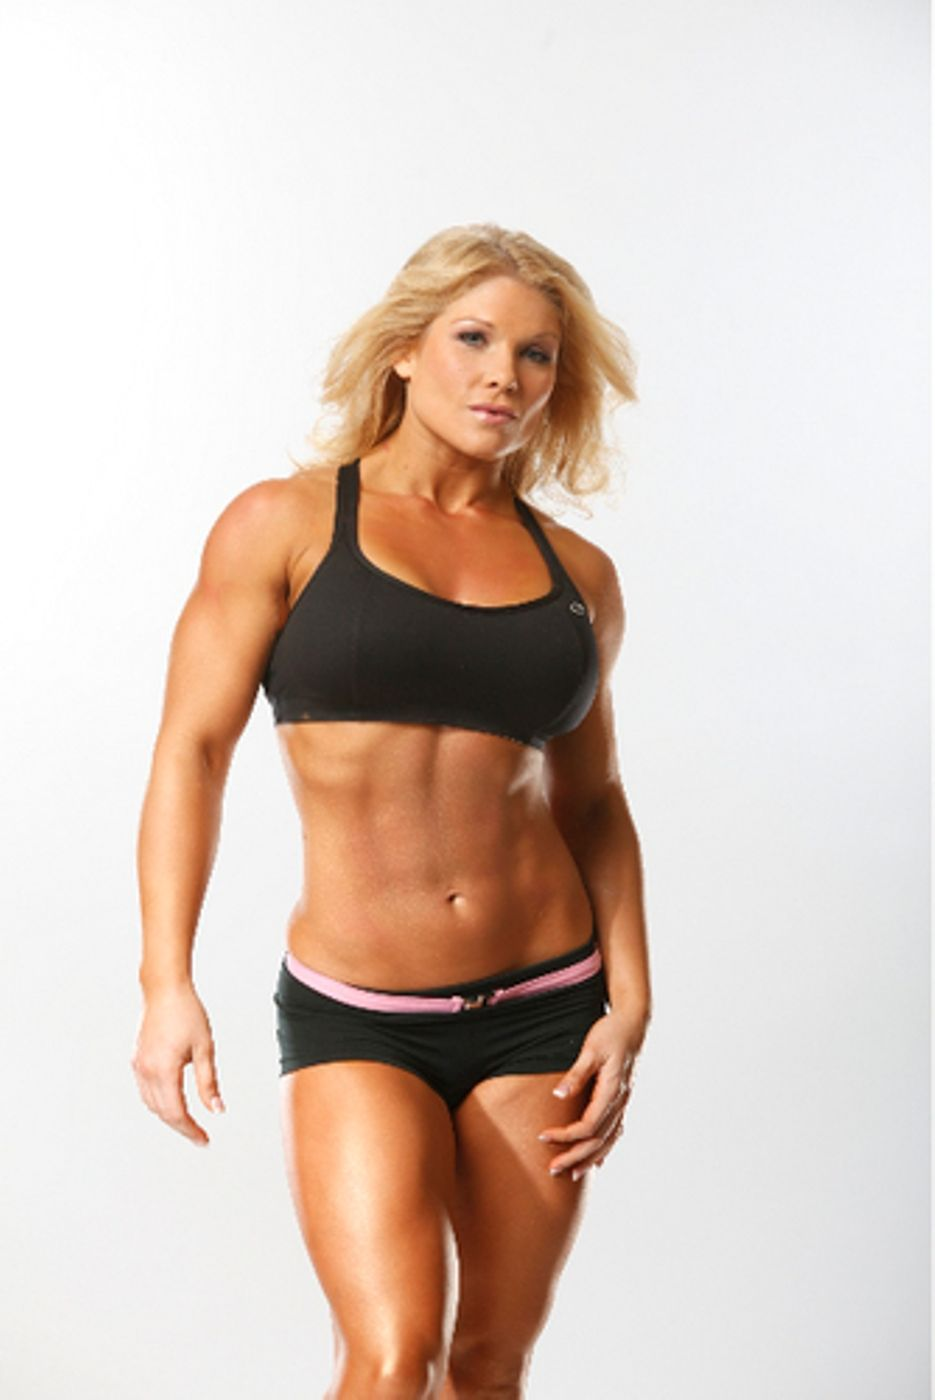 where can i find beth phoenix nude